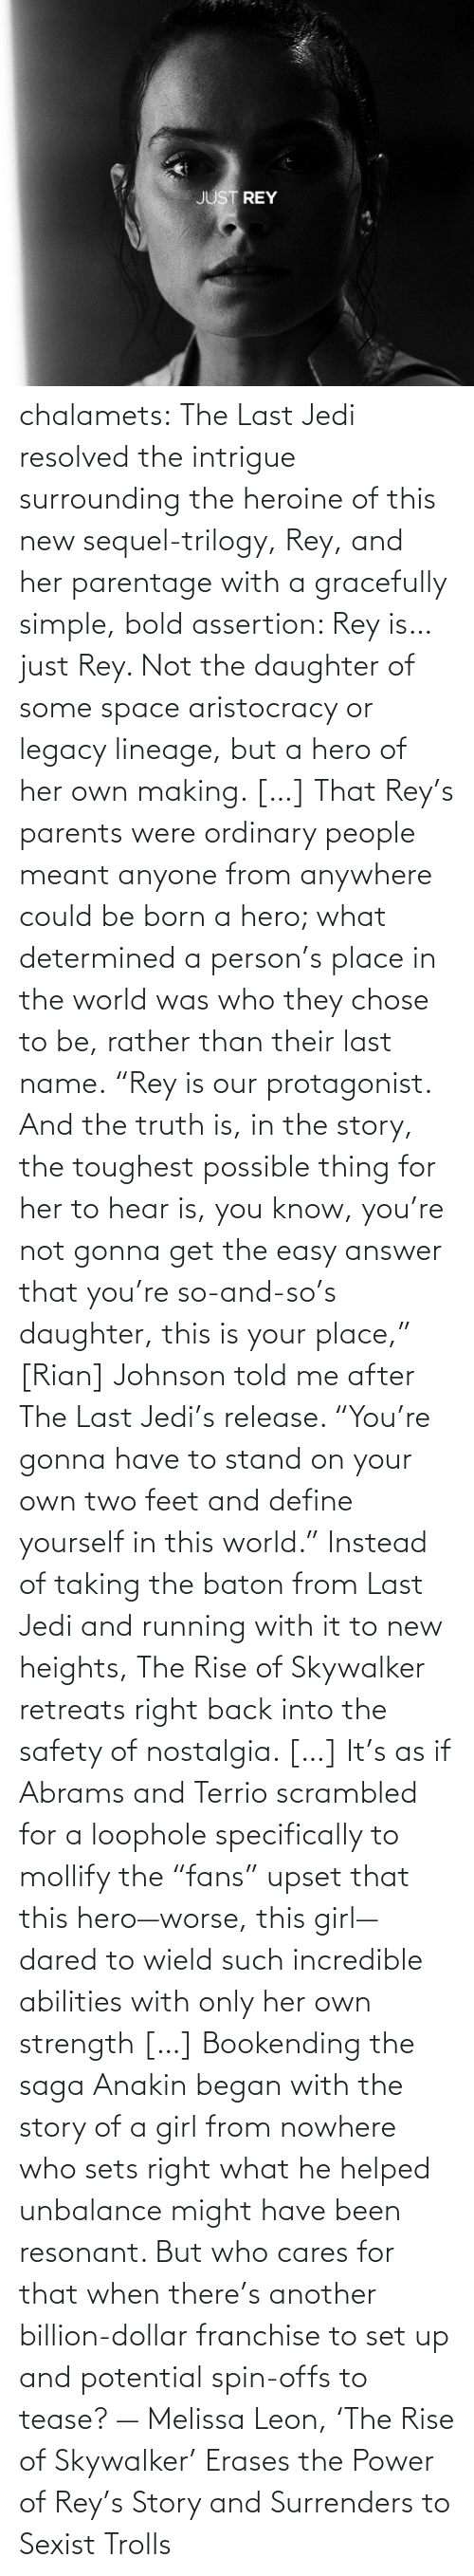 "know: chalamets:  The Last Jedi resolved the intrigue surrounding the heroine of this new sequel-trilogy, Rey, and her parentage with a gracefully simple, bold assertion: Rey is… just Rey. Not the daughter of some space aristocracy or legacy lineage, but a hero of her own making. […] That Rey's parents were ordinary people meant anyone from anywhere could be born a hero; what determined a person's place in the world was who they chose to be, rather than their last name. ""Rey is our protagonist. And the truth is, in the story, the toughest possible thing for her to hear is, you know, you're not gonna get the easy answer that you're so-and-so's daughter, this is your place,"" [Rian] Johnson told me after The Last Jedi's release. ""You're gonna have to stand on your own two feet and define yourself in this world."" Instead of taking the baton from Last Jedi and running with it to new heights, The Rise of Skywalker retreats right back into the safety of nostalgia. […] It's as if Abrams and Terrio scrambled for a loophole specifically to mollify the ""fans"" upset that this hero—worse, this girl—dared to wield such incredible abilities with only her own strength […] Bookending the saga Anakin began with the story of a girl from nowhere who sets right what he helped unbalance might have been resonant. But who cares for that when there's another billion-dollar franchise to set up and potential spin-offs to tease? — Melissa Leon, 'The Rise of Skywalker' Erases the Power of Rey's Story and Surrenders to Sexist Trolls"